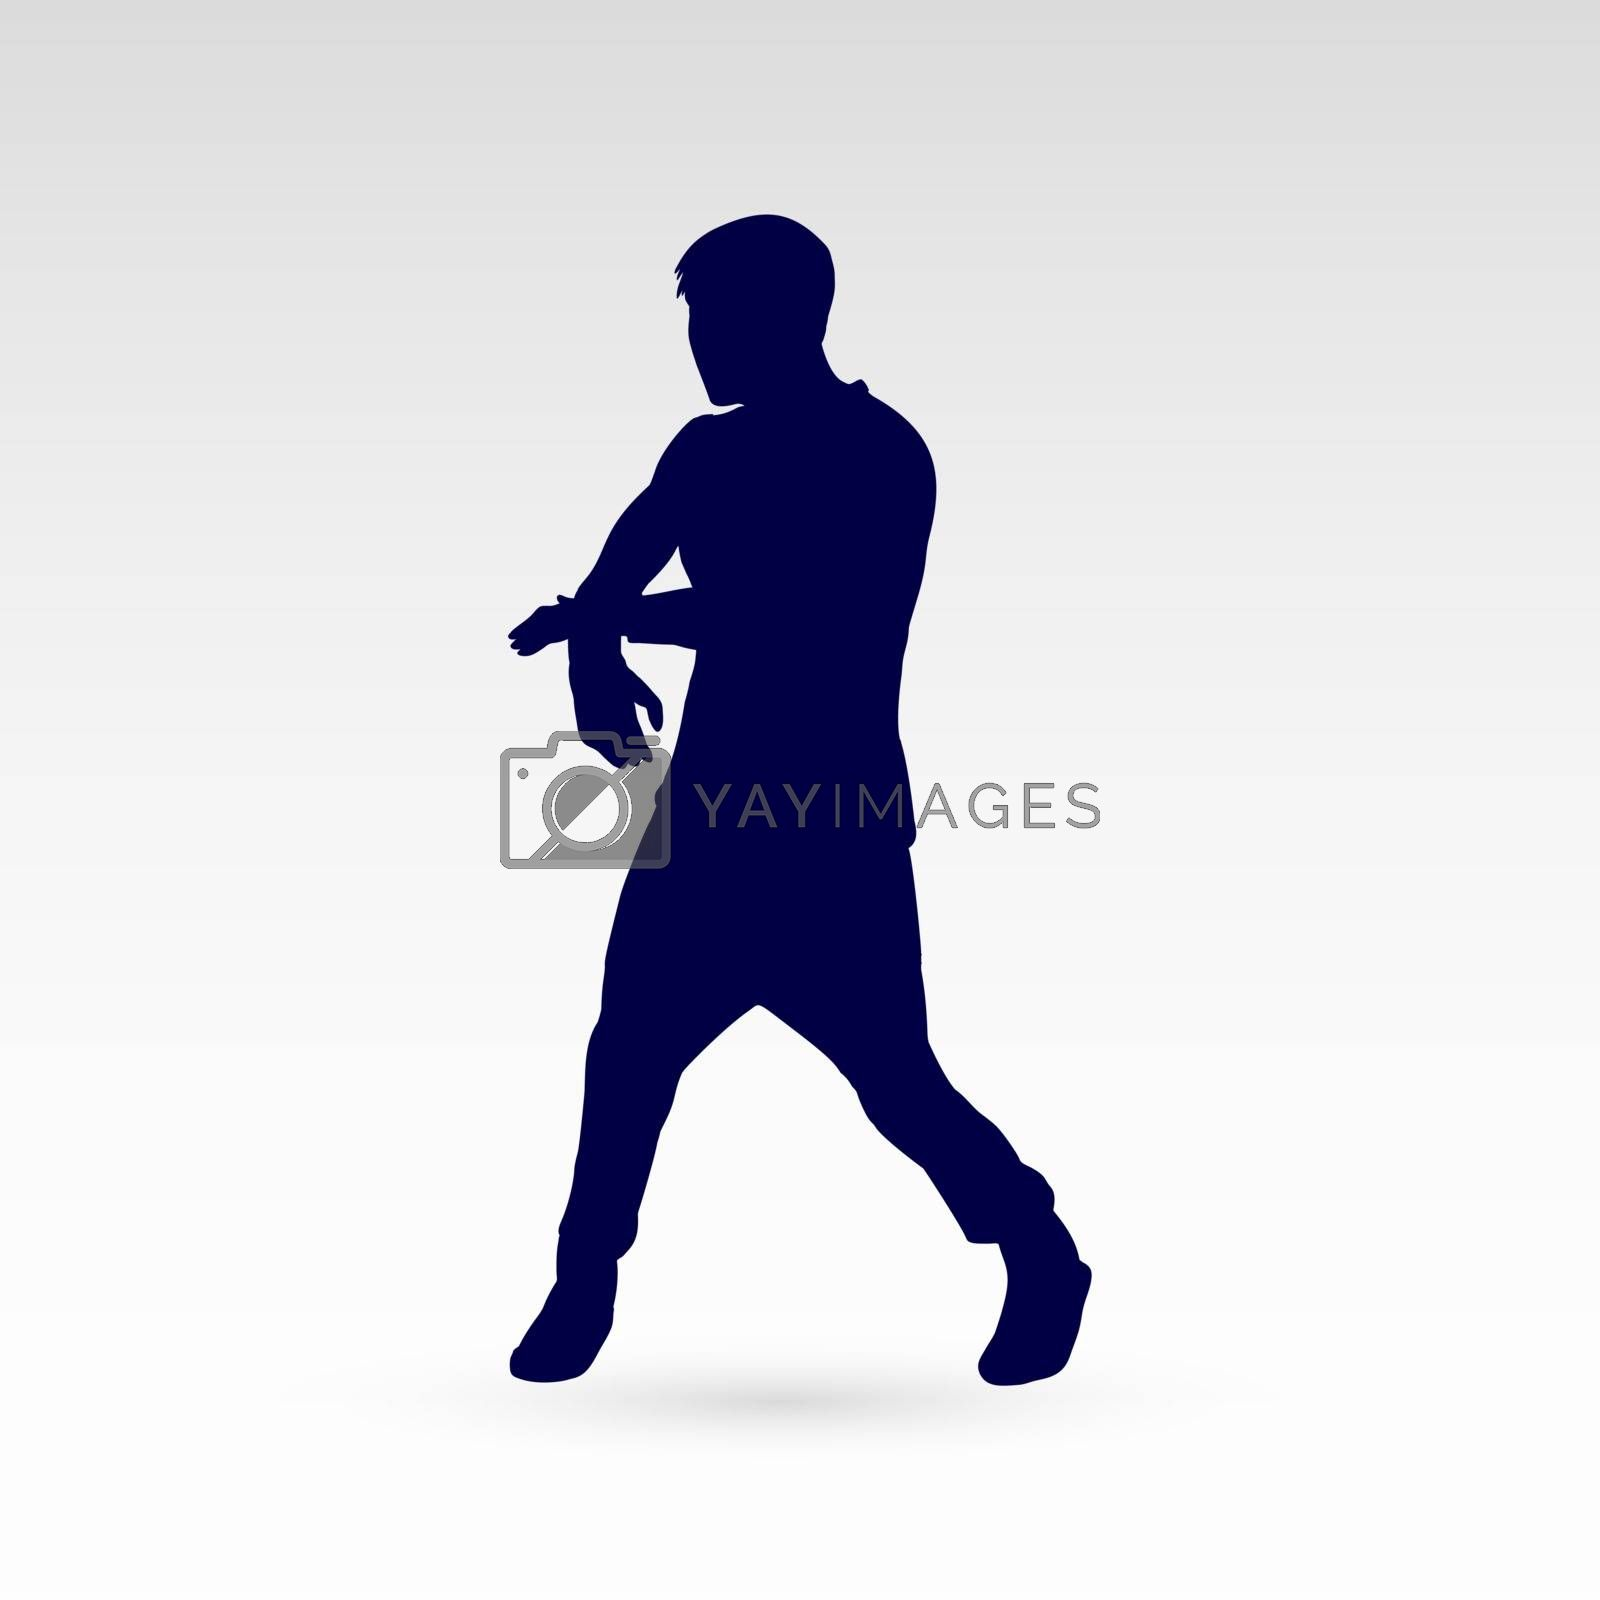 Modern Dancer Silhouette of a Man Dancer Hip Hop Choreography